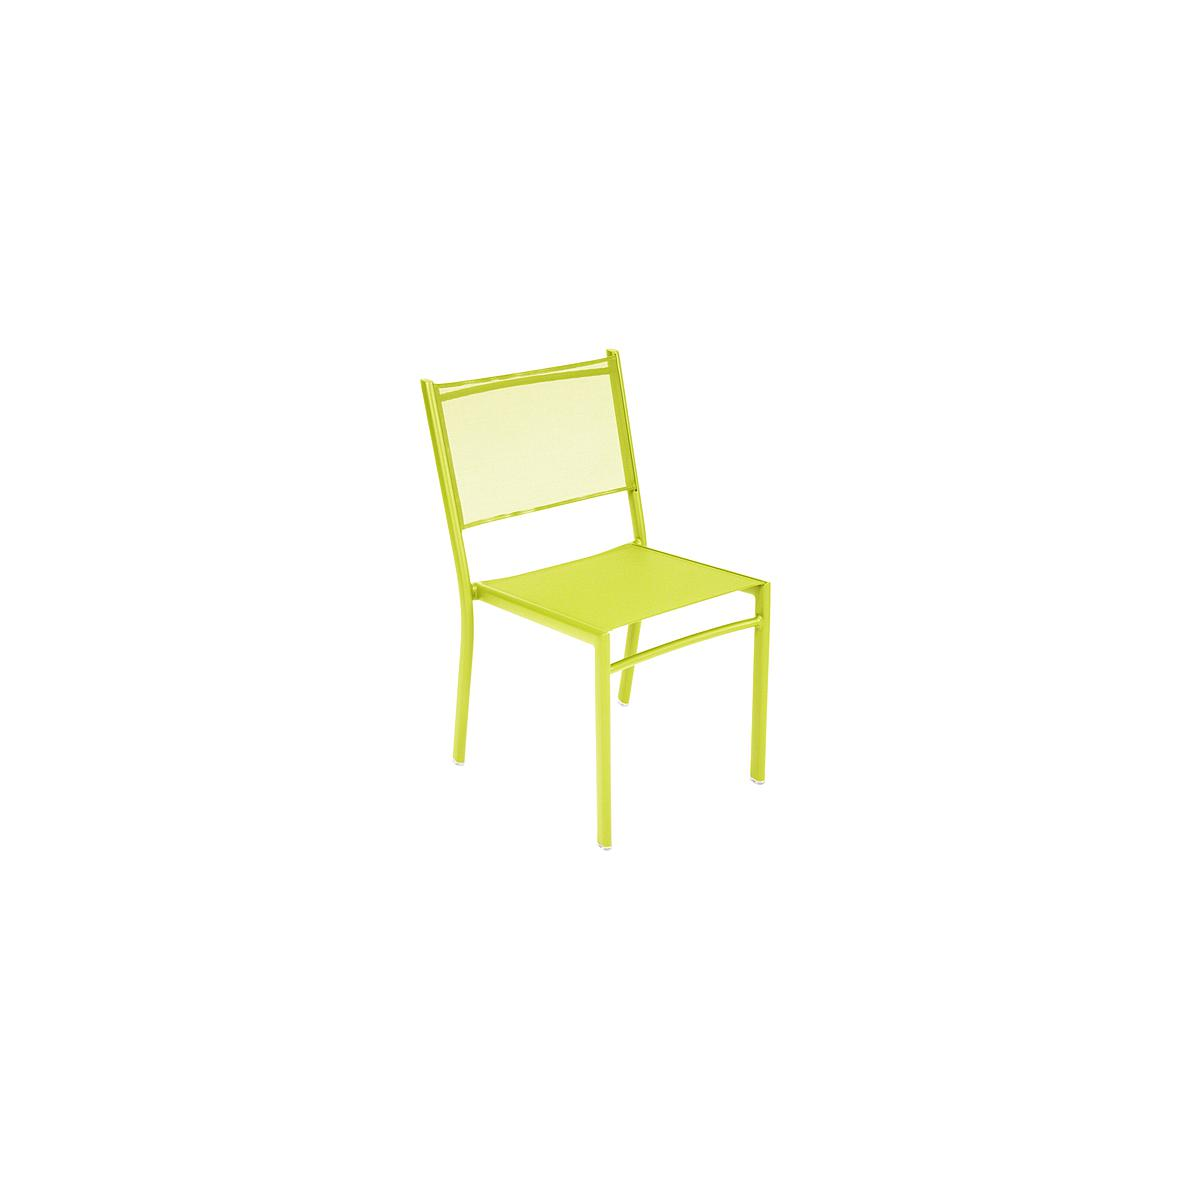 COSTA by Fermob Chaise verveine